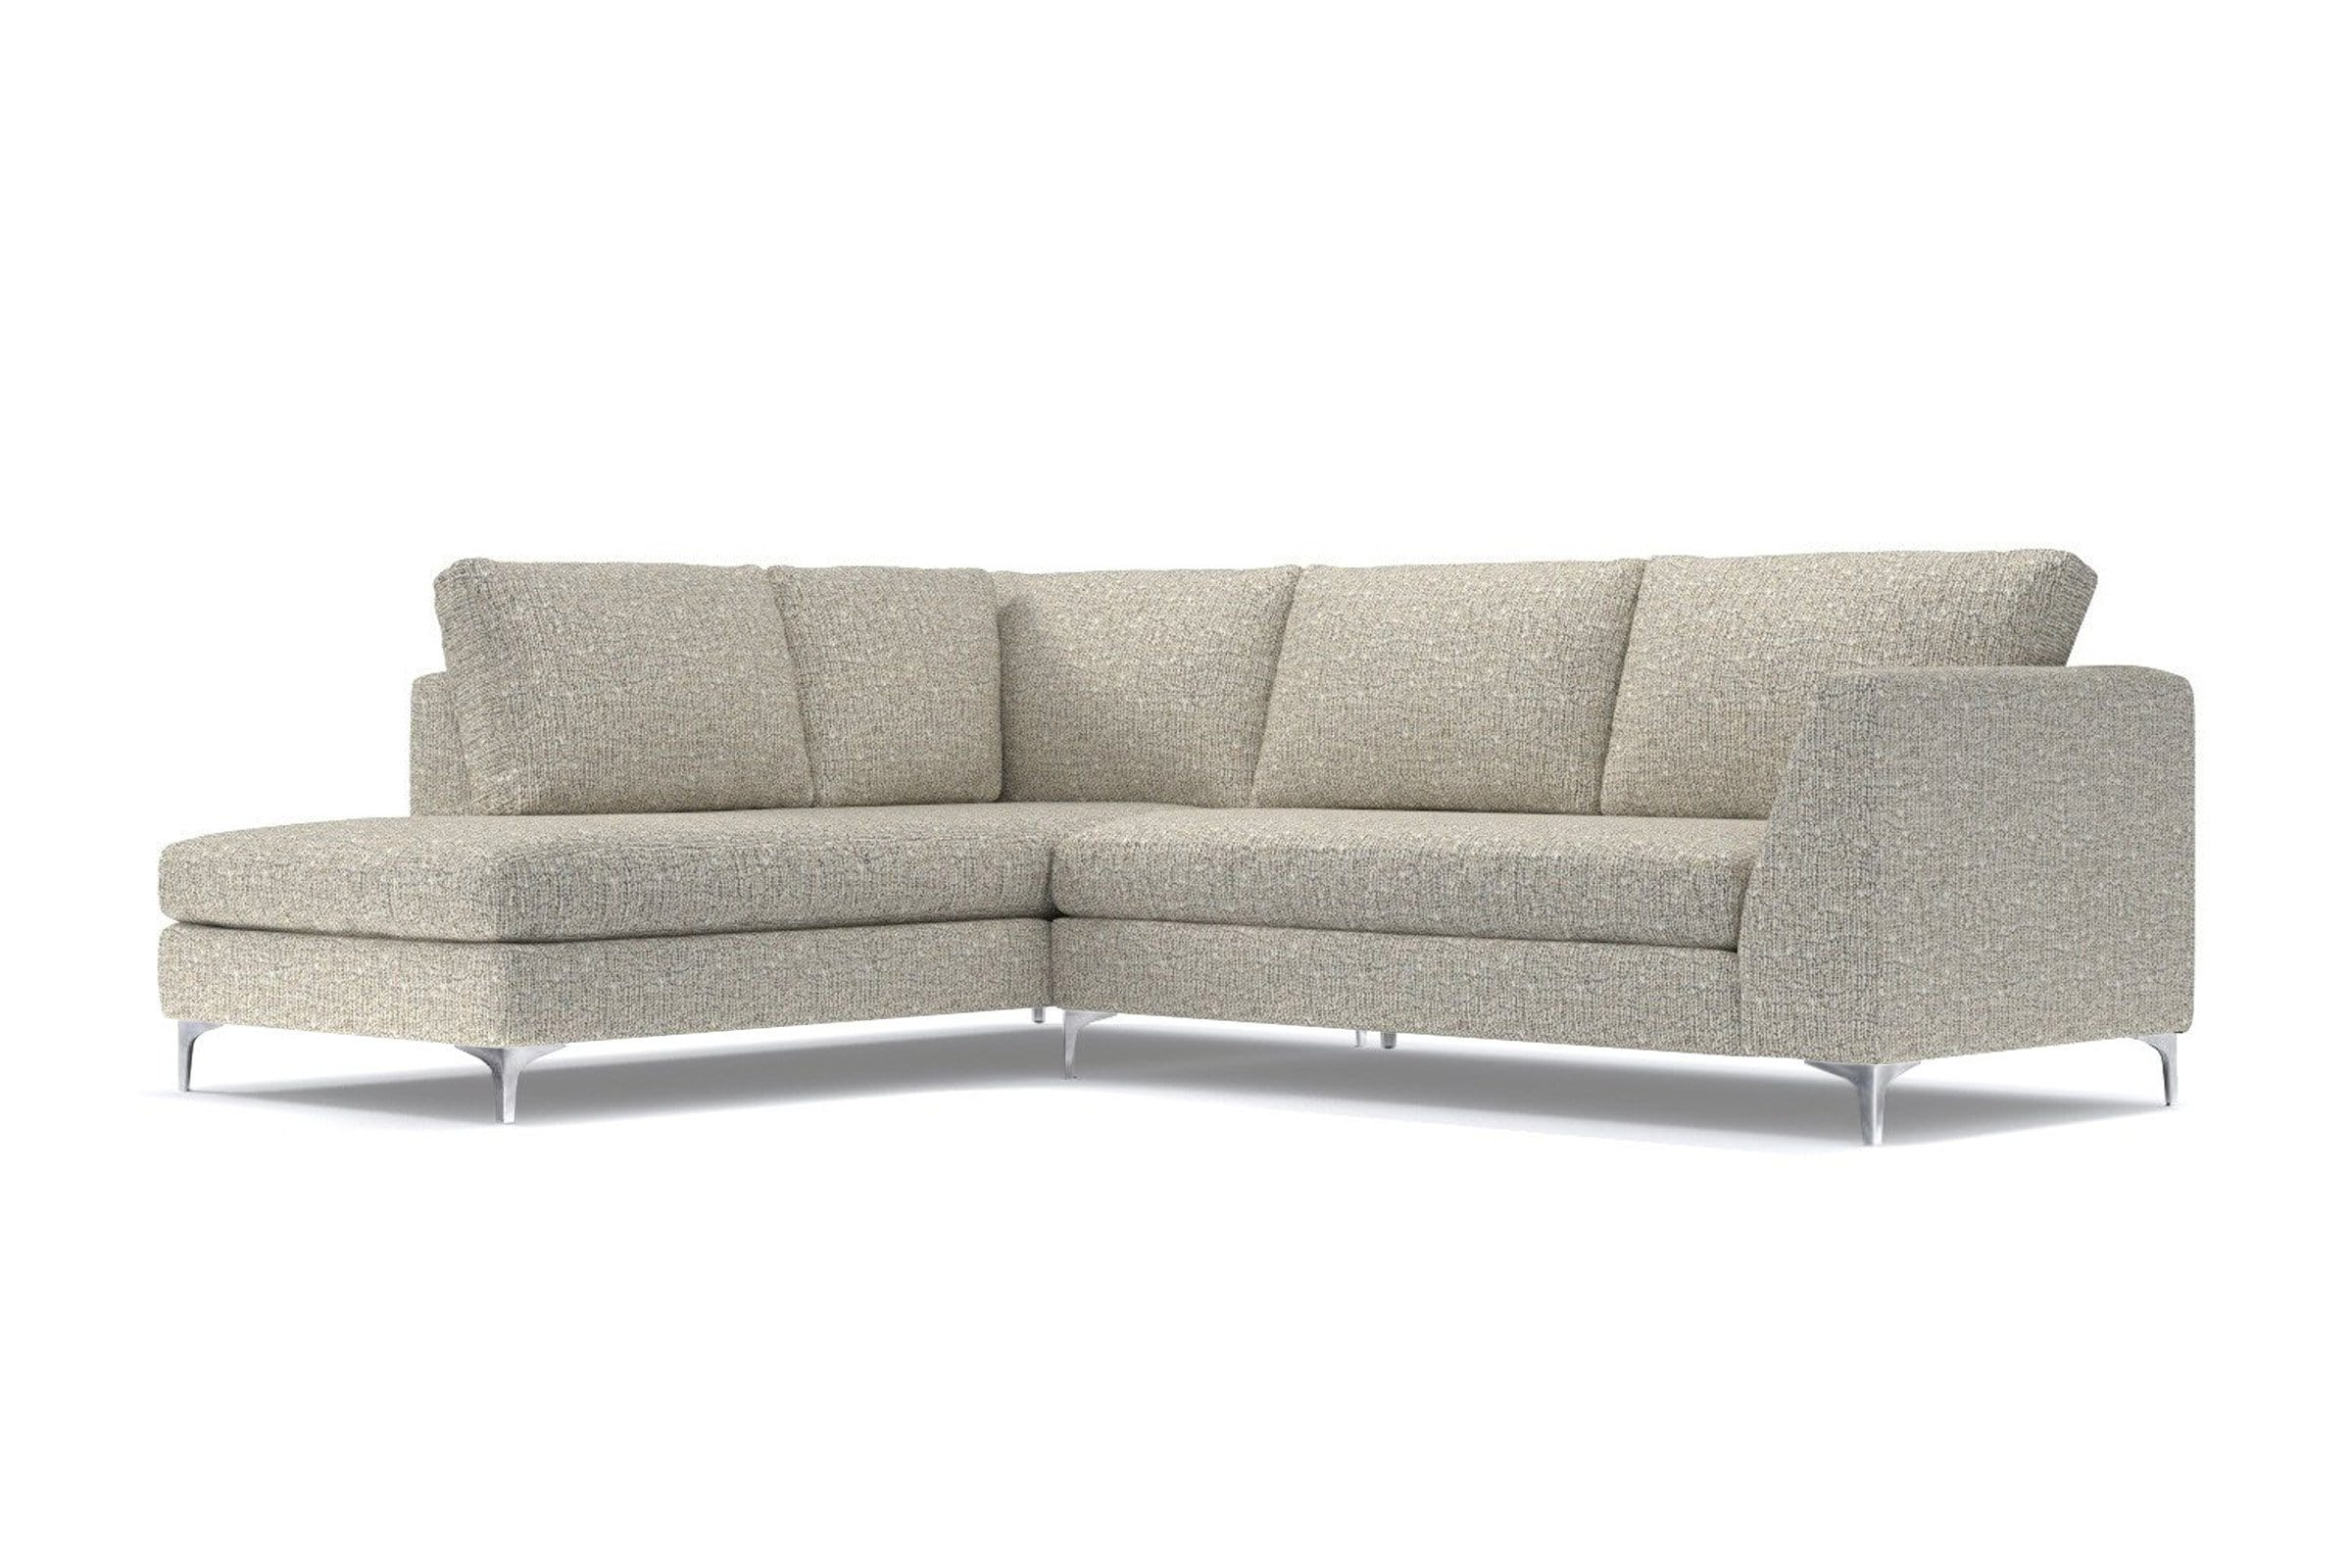 Mulholland 2pc Sectional Sofa - Beige - Modern Sectional Sofa Made in USA - Sold by Apt2B